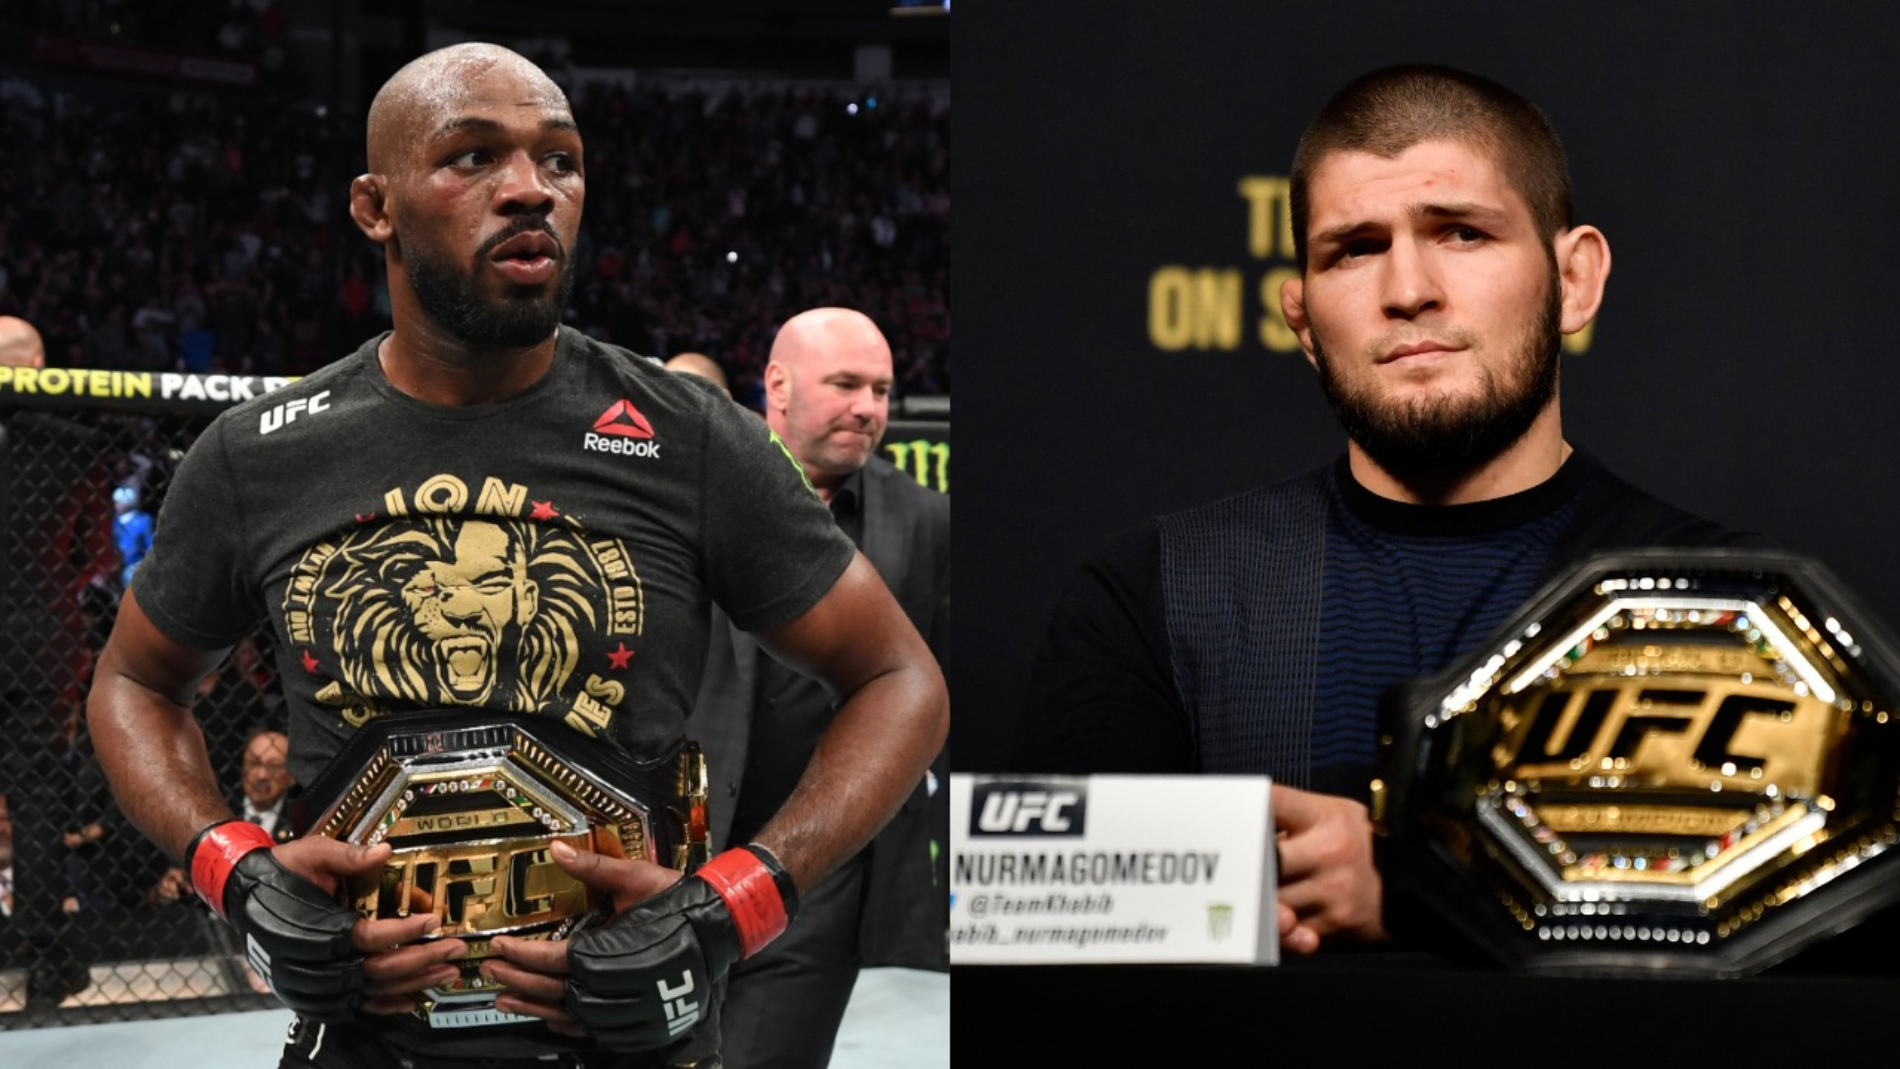 Khabib Nurmagomedov is calling it quits after a legendary career in the UFC. So, is he the GOAT? Jon Jones just sent out a stern message.